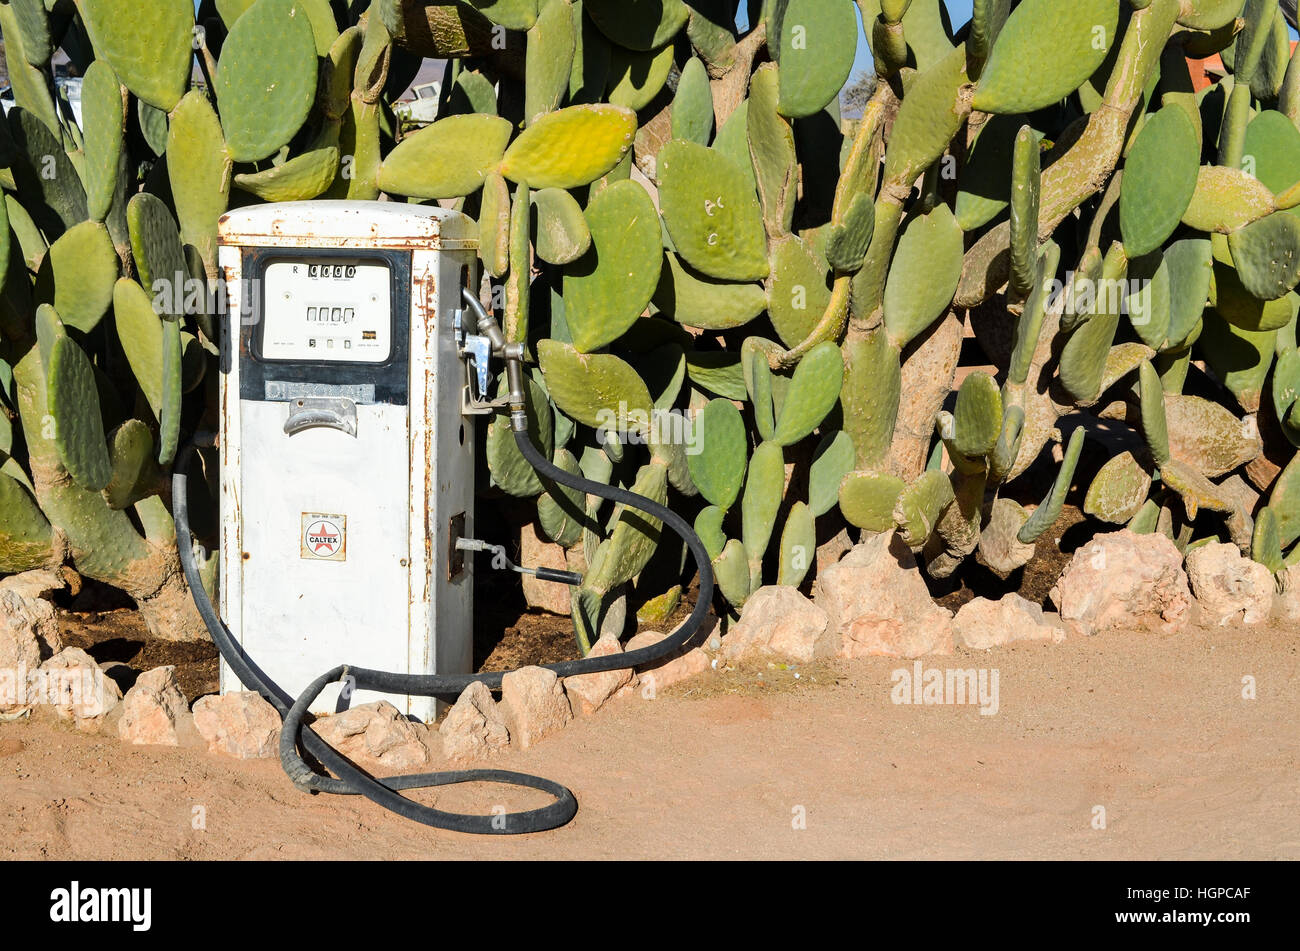 Petrol pump and cactus trees in Solitaire, Namibia - Stock Image